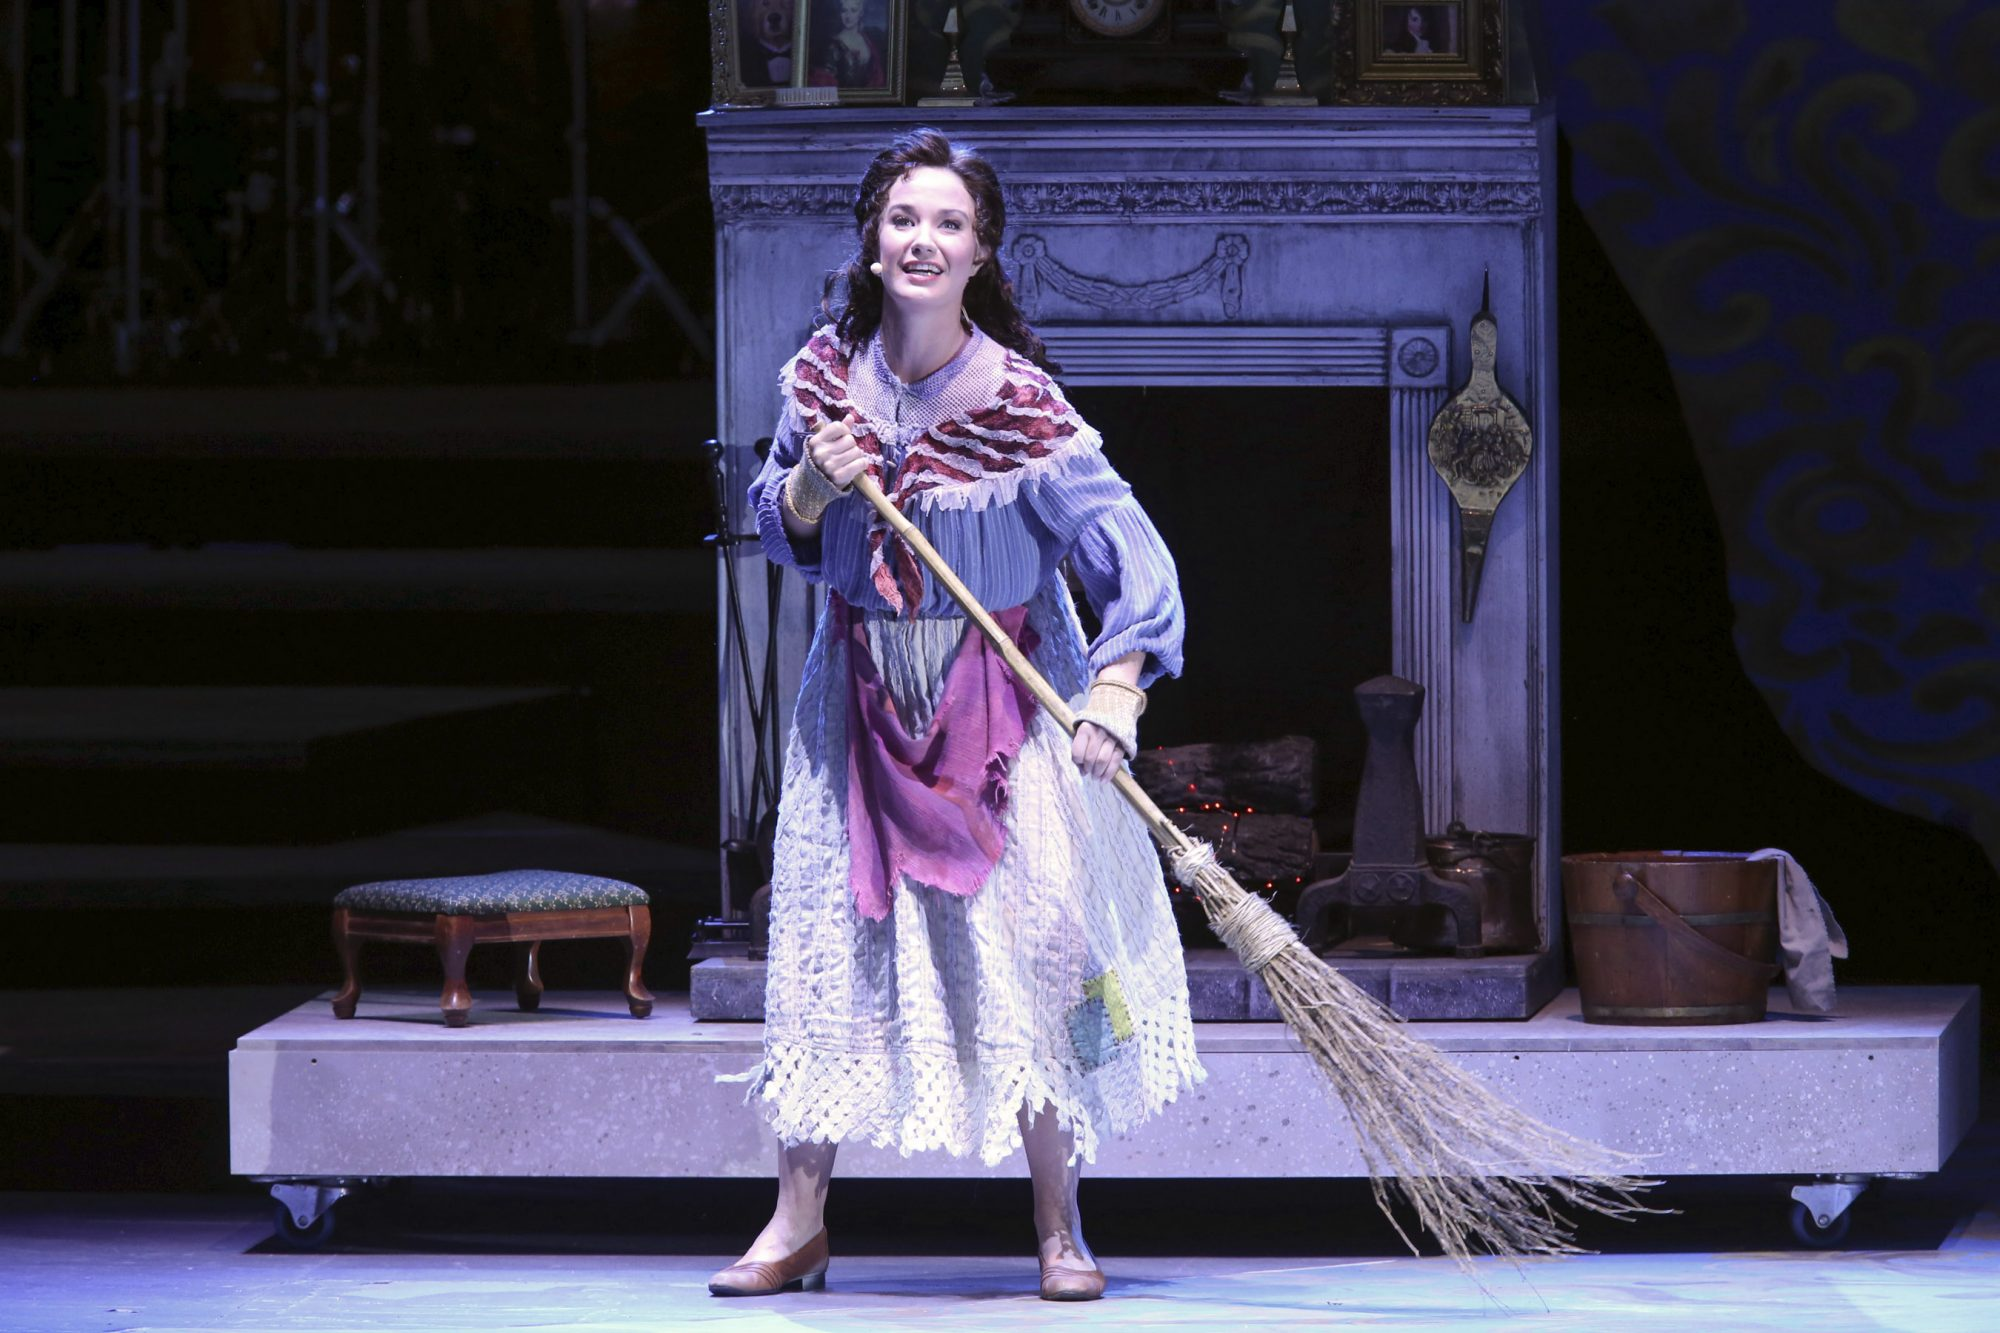 Hollywood Bowl Presents Into The Woods 2019 -- Pictured: Sierra Boggess as Cinderella Photos by Craig T. Mathew and Greg Grudt/Mathew Imaging If these photos will be used on Social Media, please be sure to tag the following: @mathewimaging